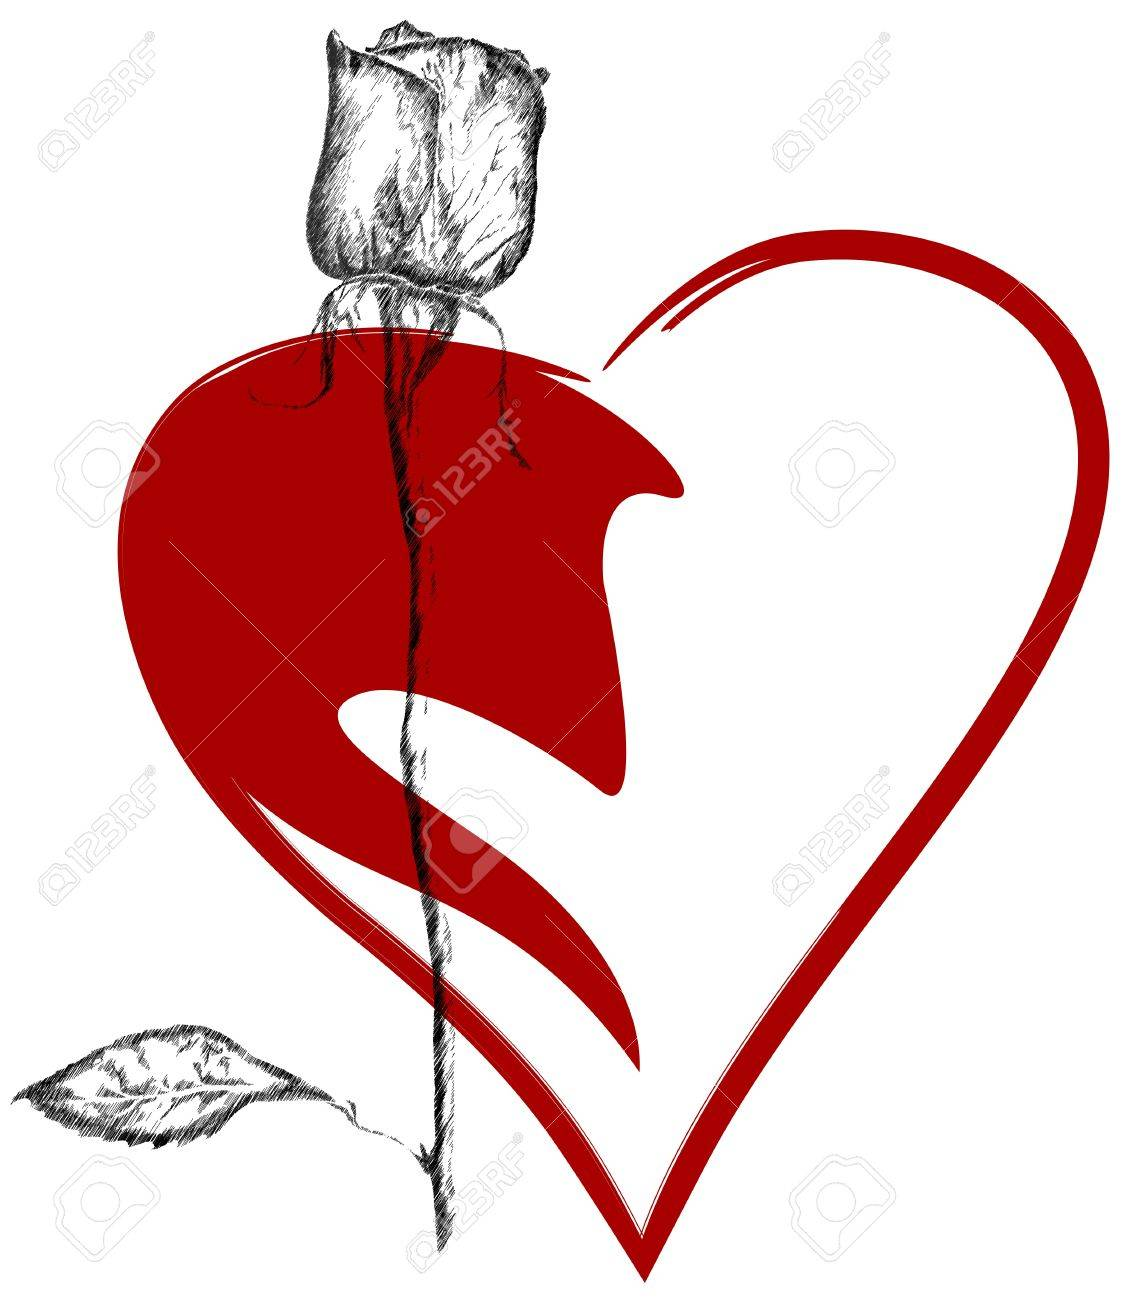 valentine emblem - heart  with a long stem rose Stock Vector - 11662132